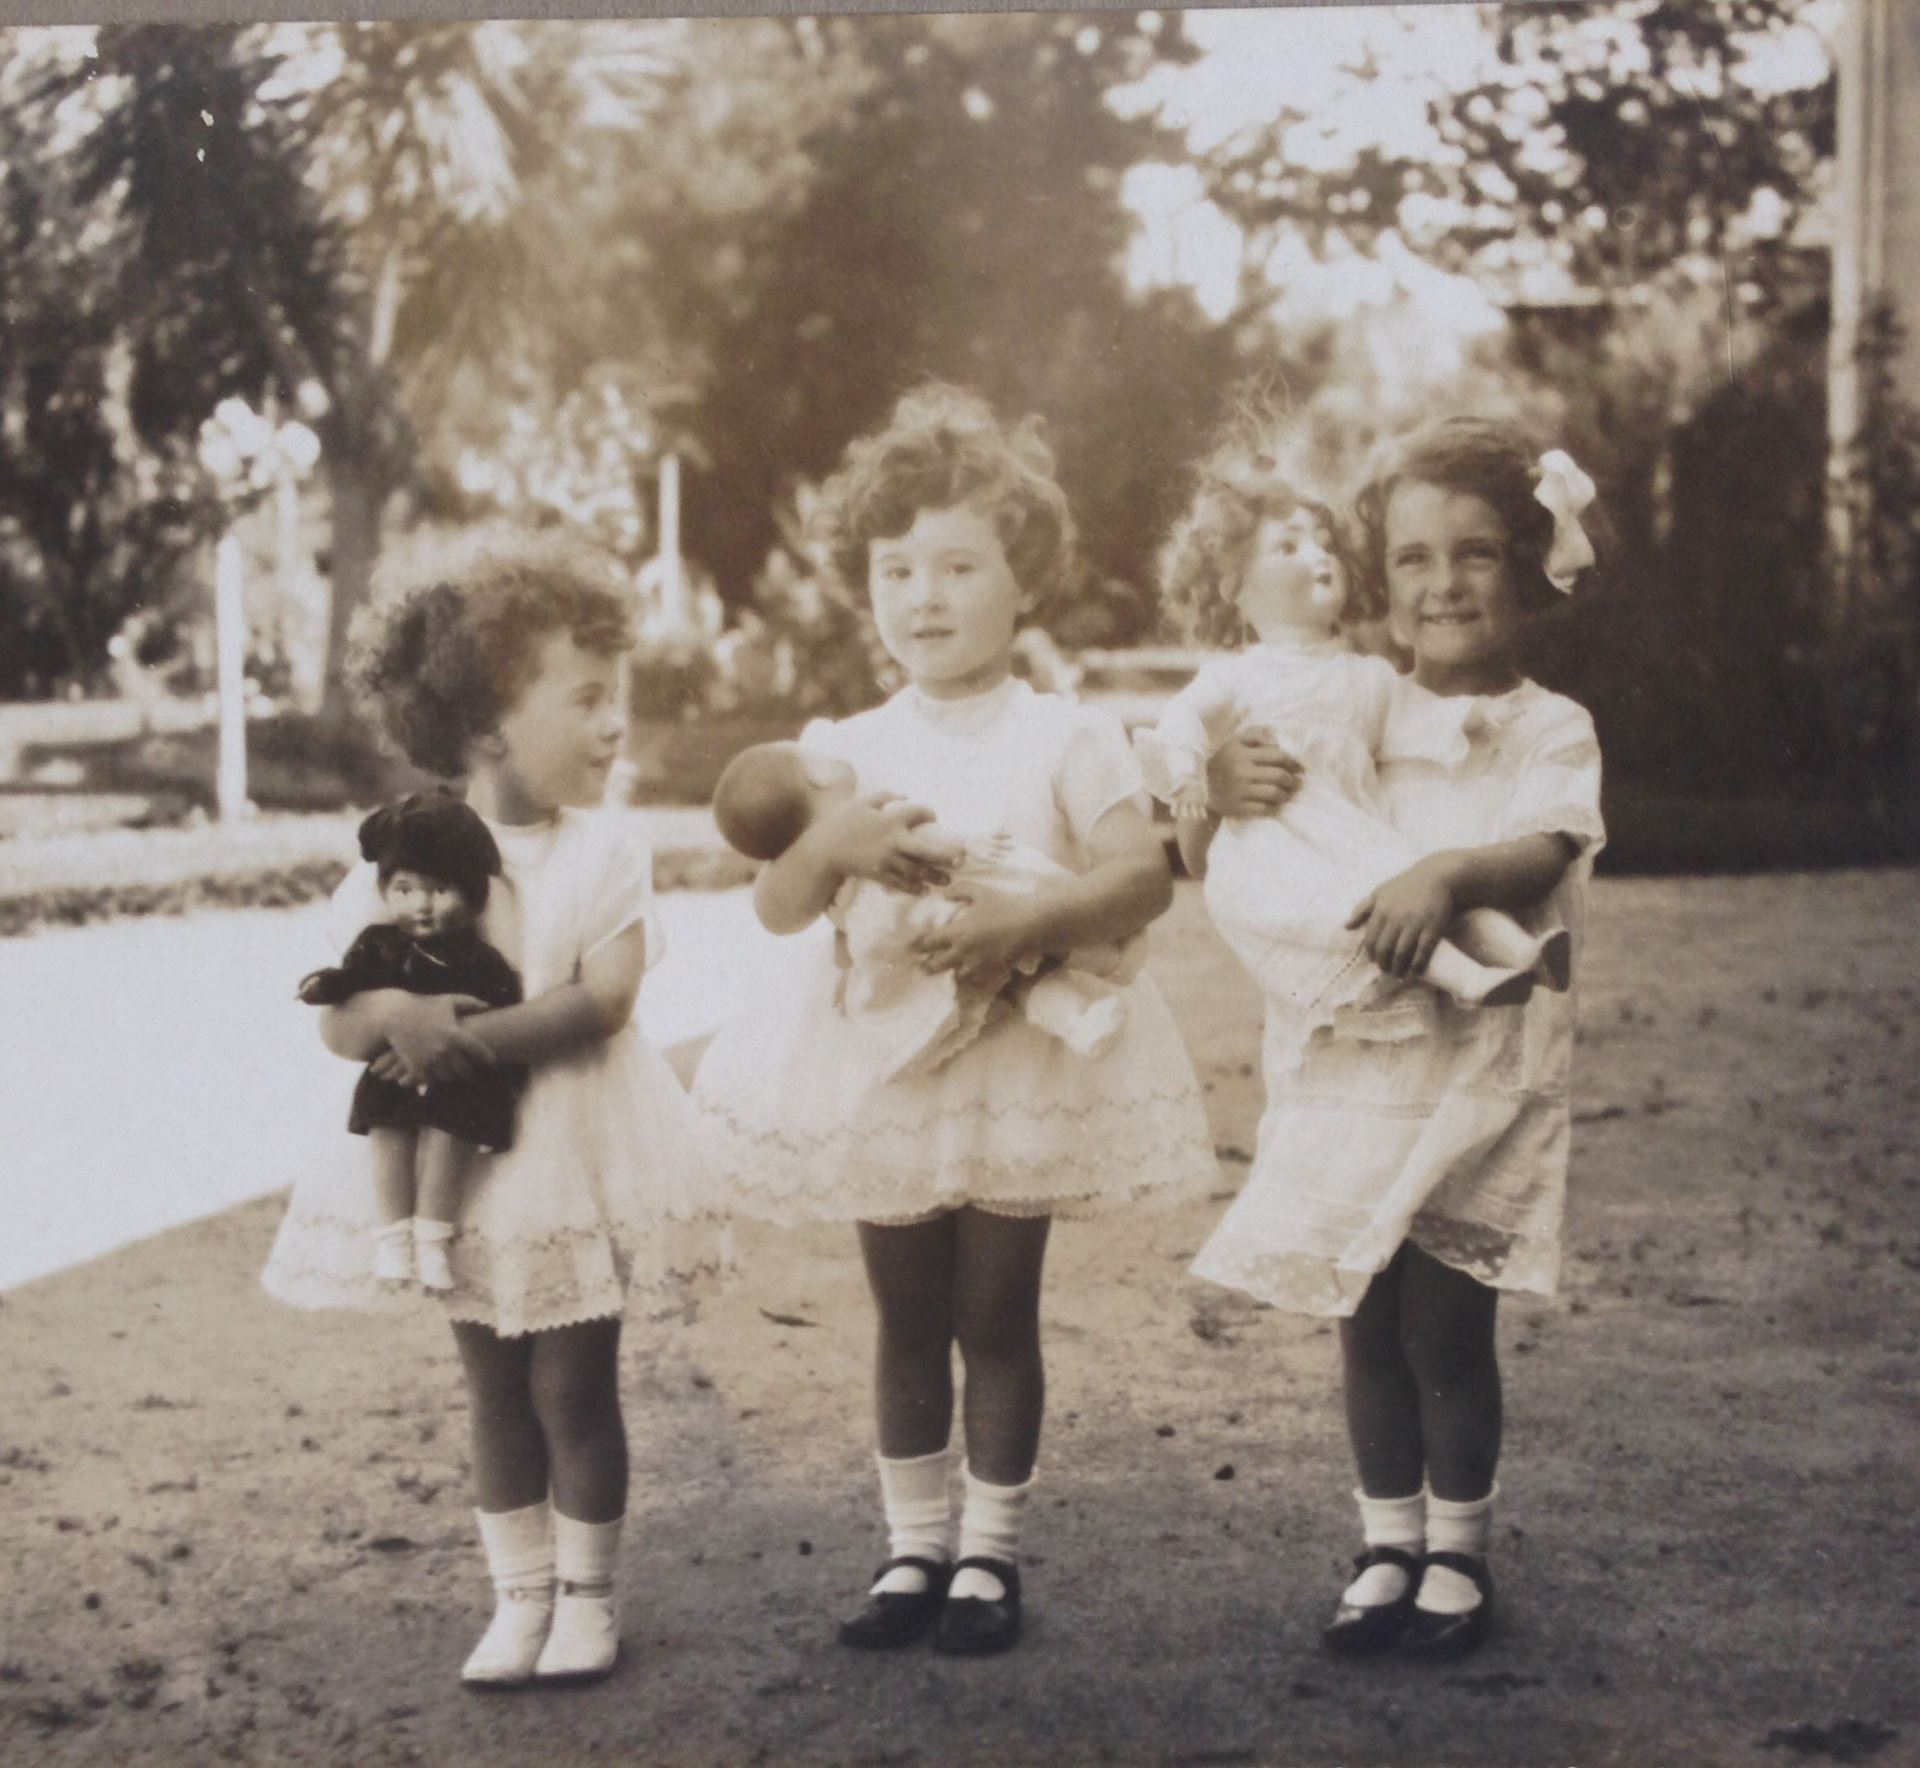 Barbara on far right with childhood friends